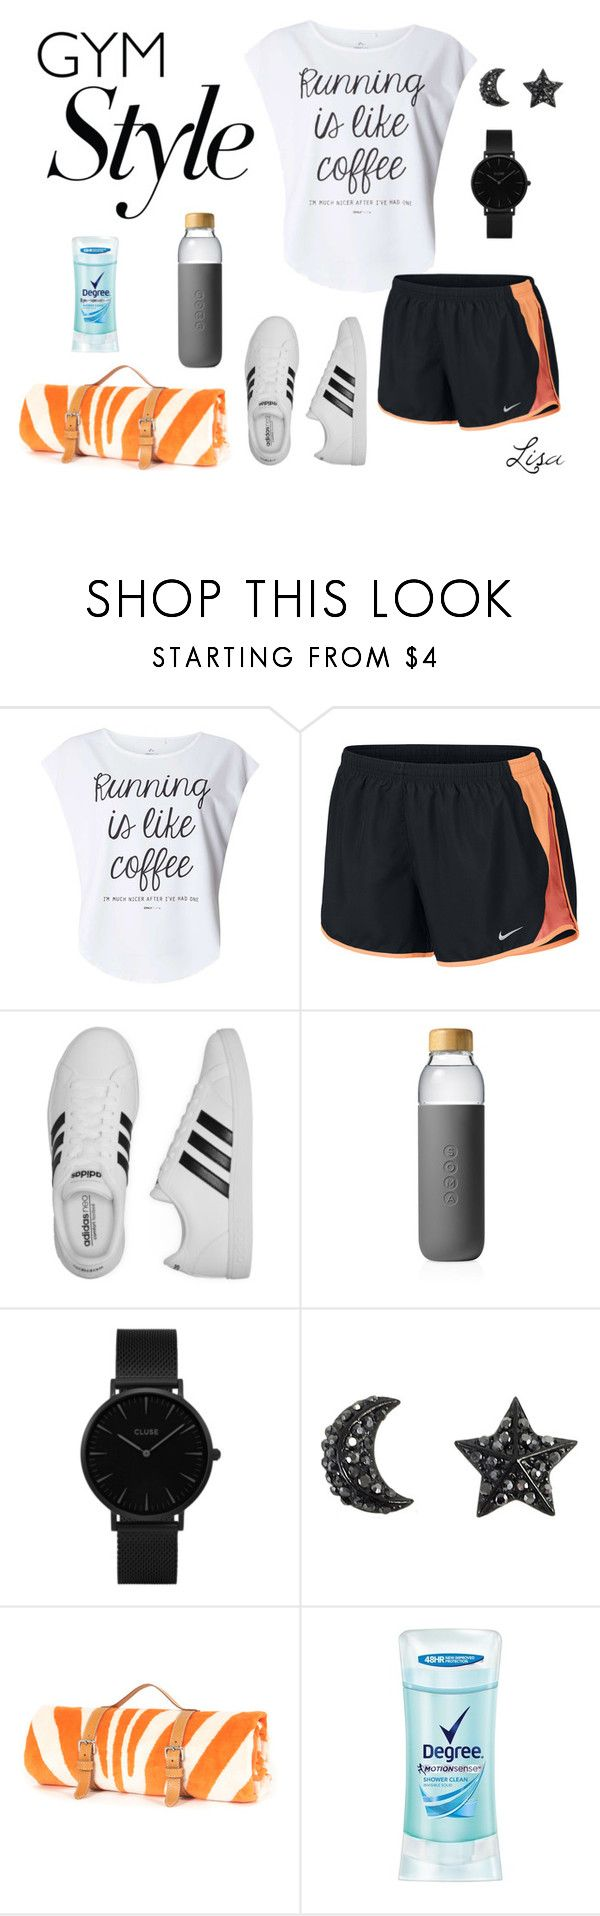 """""""Gym Style"""" by coolmommy44 ❤ liked on Polyvore featuring Dorothy Perkins, NIKE, adidas, Soma, CLUSE, Degree, polyvoreeditorial, polyvorecontest and gymessentials"""